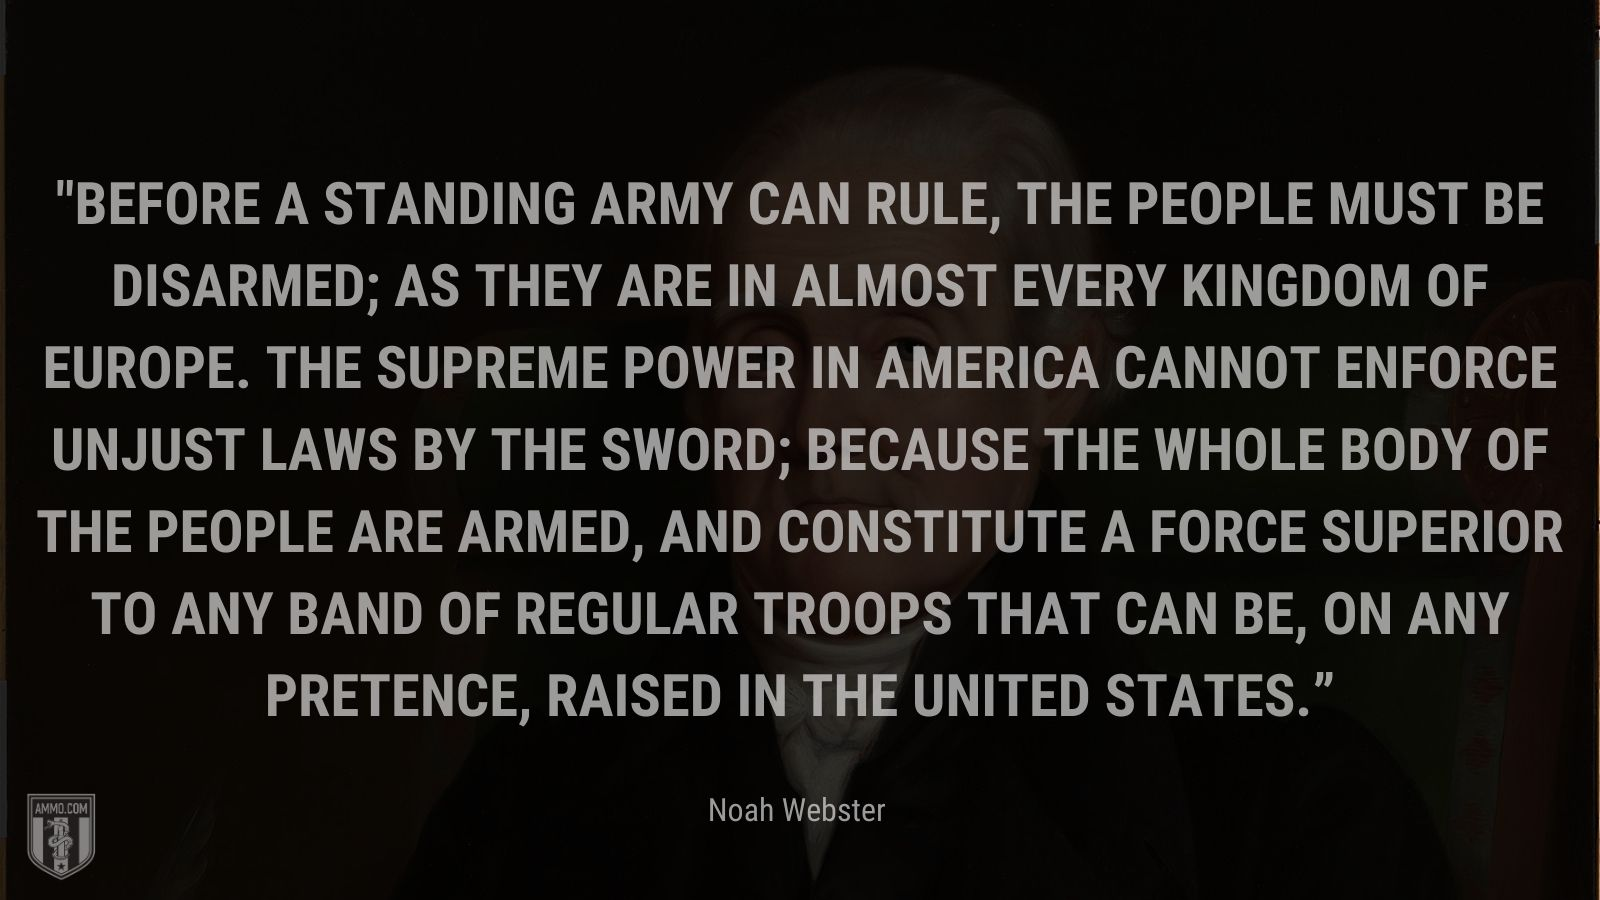 """""""Before a standing army can rule, the people must be disarmed; as they are in almost every kingdom of Europe. The supreme power in America cannot enforce unjust laws by the sword; because the whole body of the people are armed, and constitute a force superior to any band of regular troops that can be, on any pretence, raised in the United States."""" - Noah Webster"""